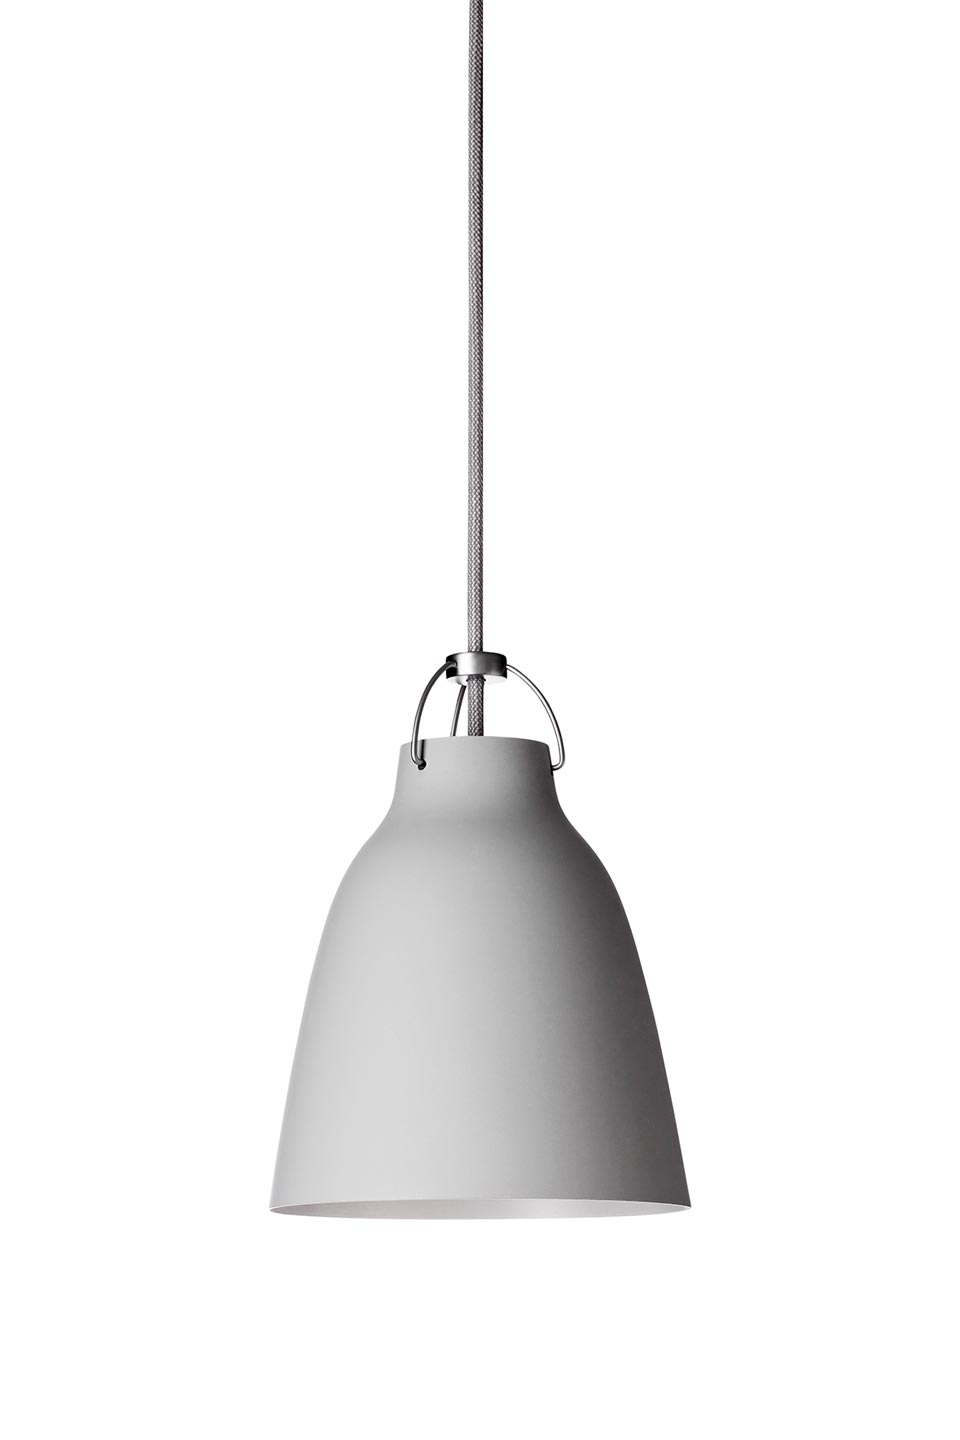 Caravaggio Matt suspension PM gris 25-clair- mat. Light Years.